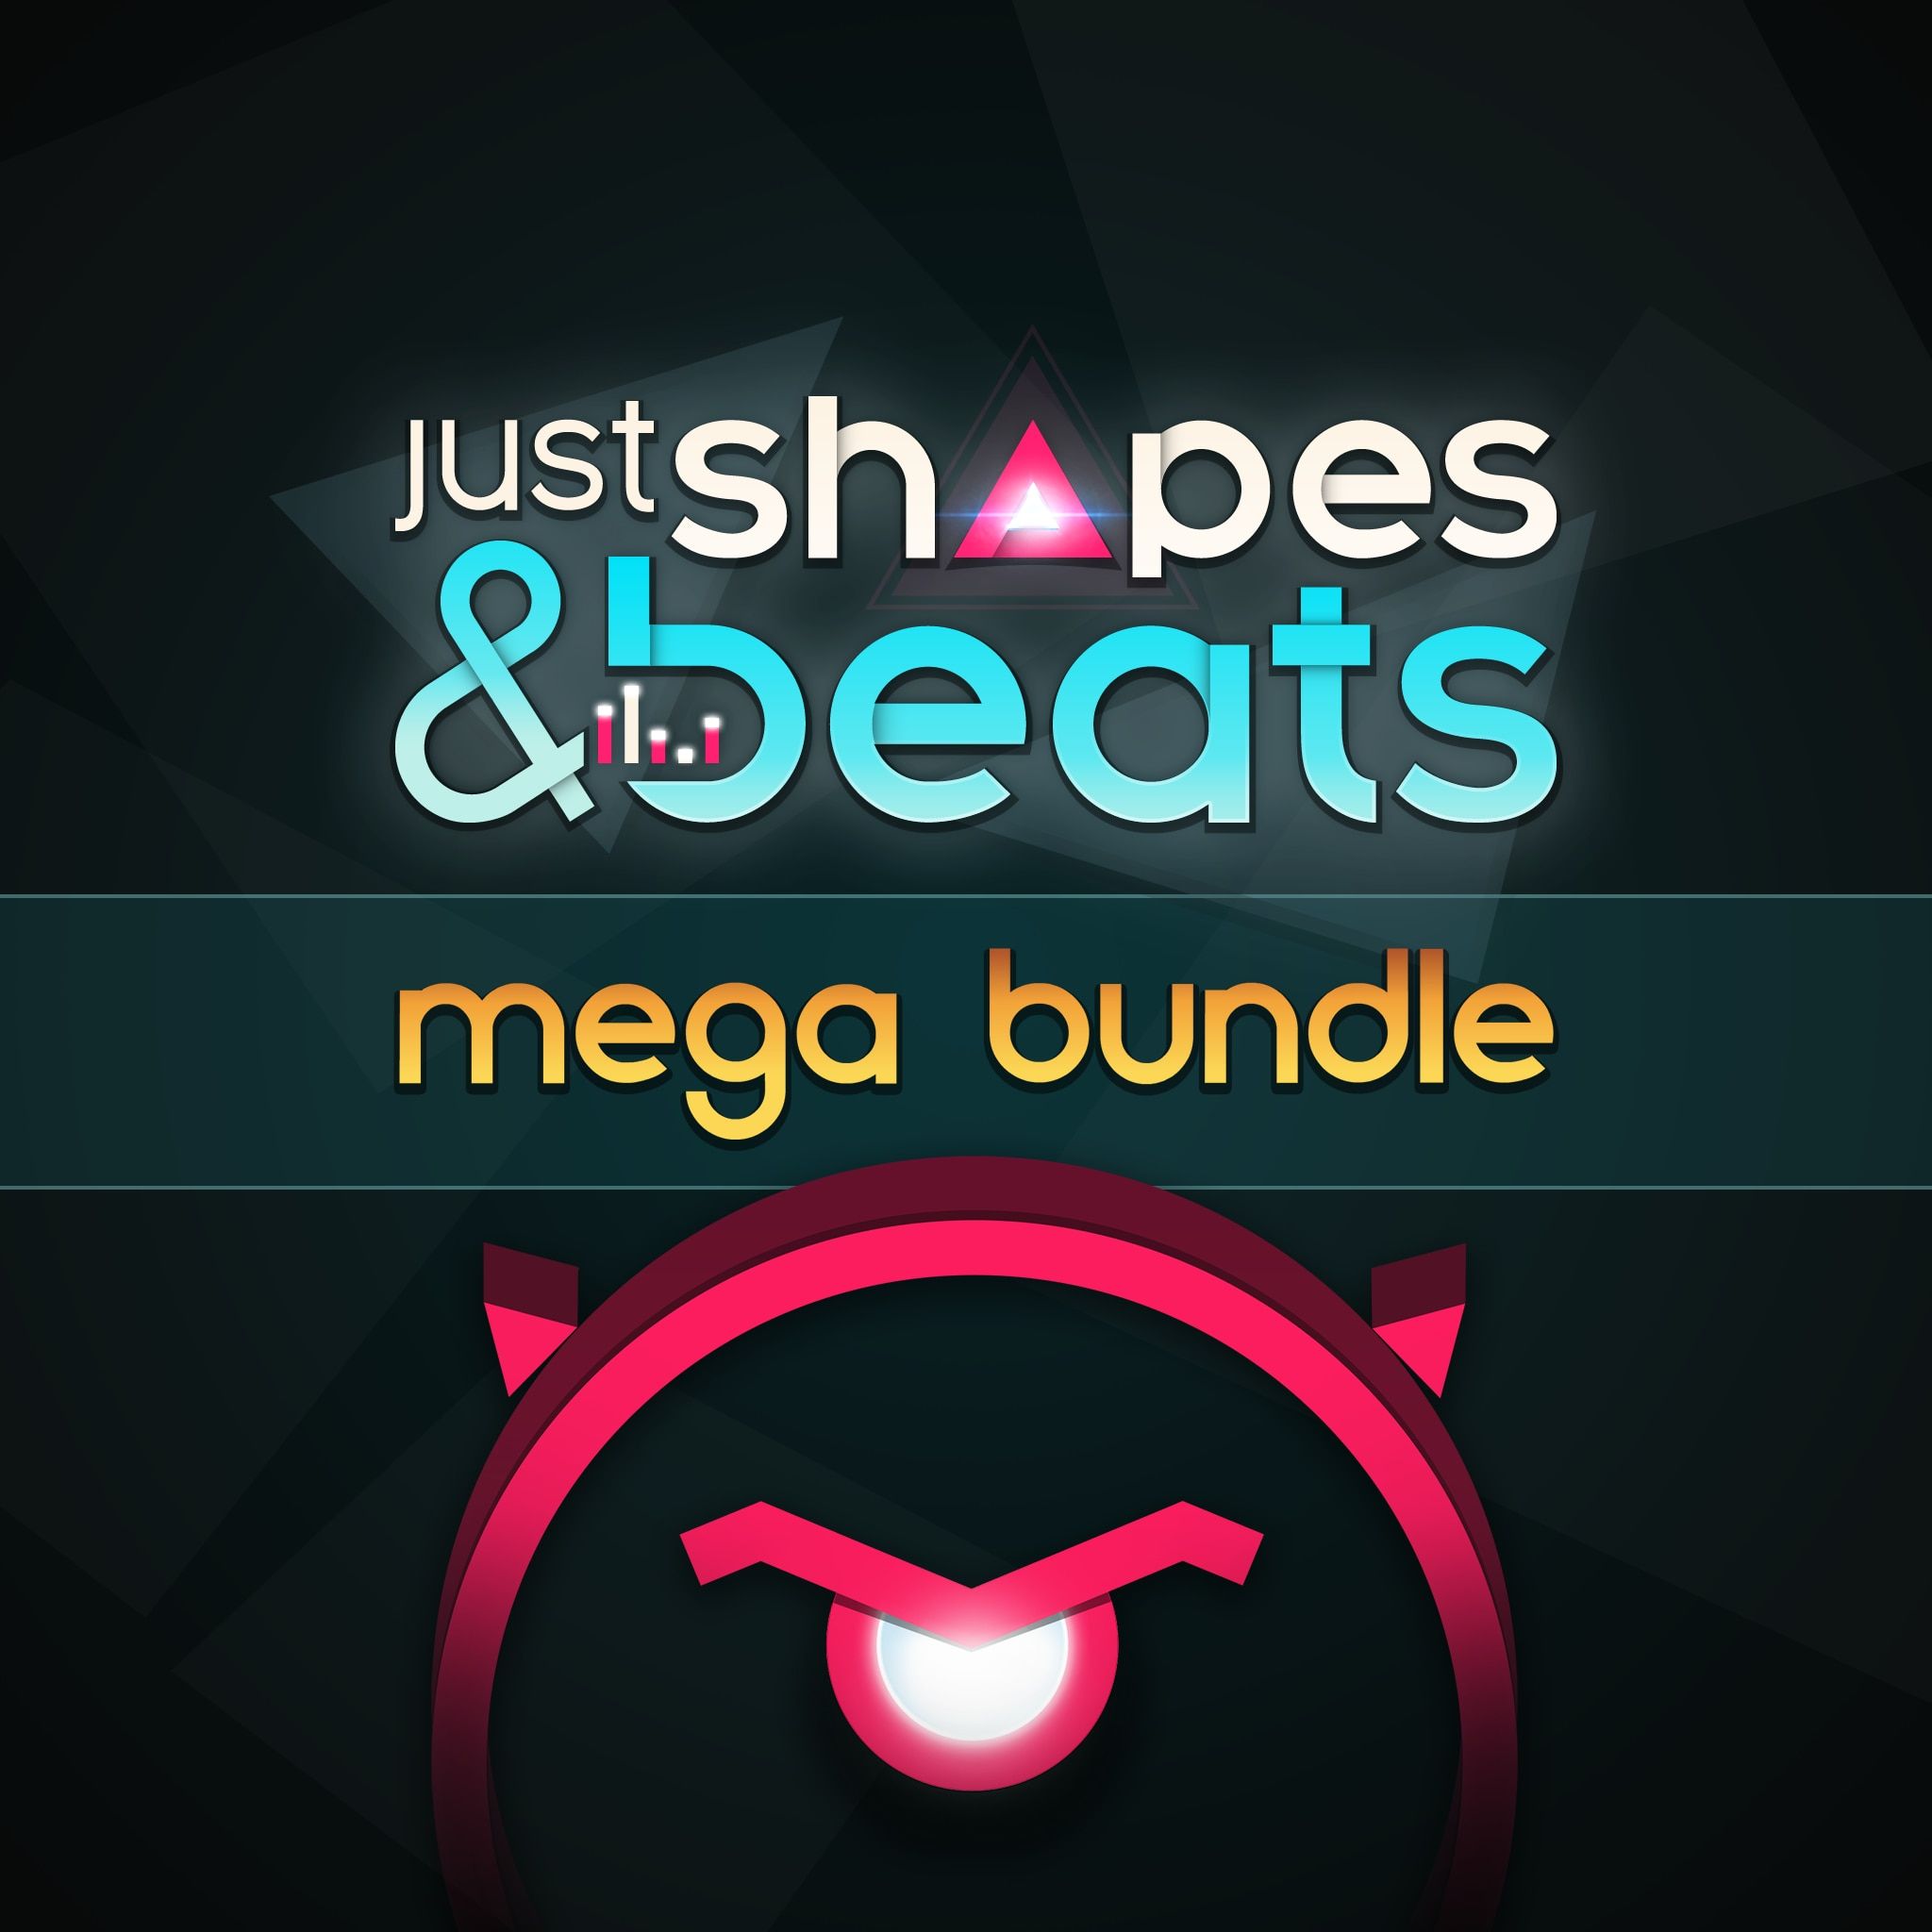 Just Shapes & Beats Mega Bundle